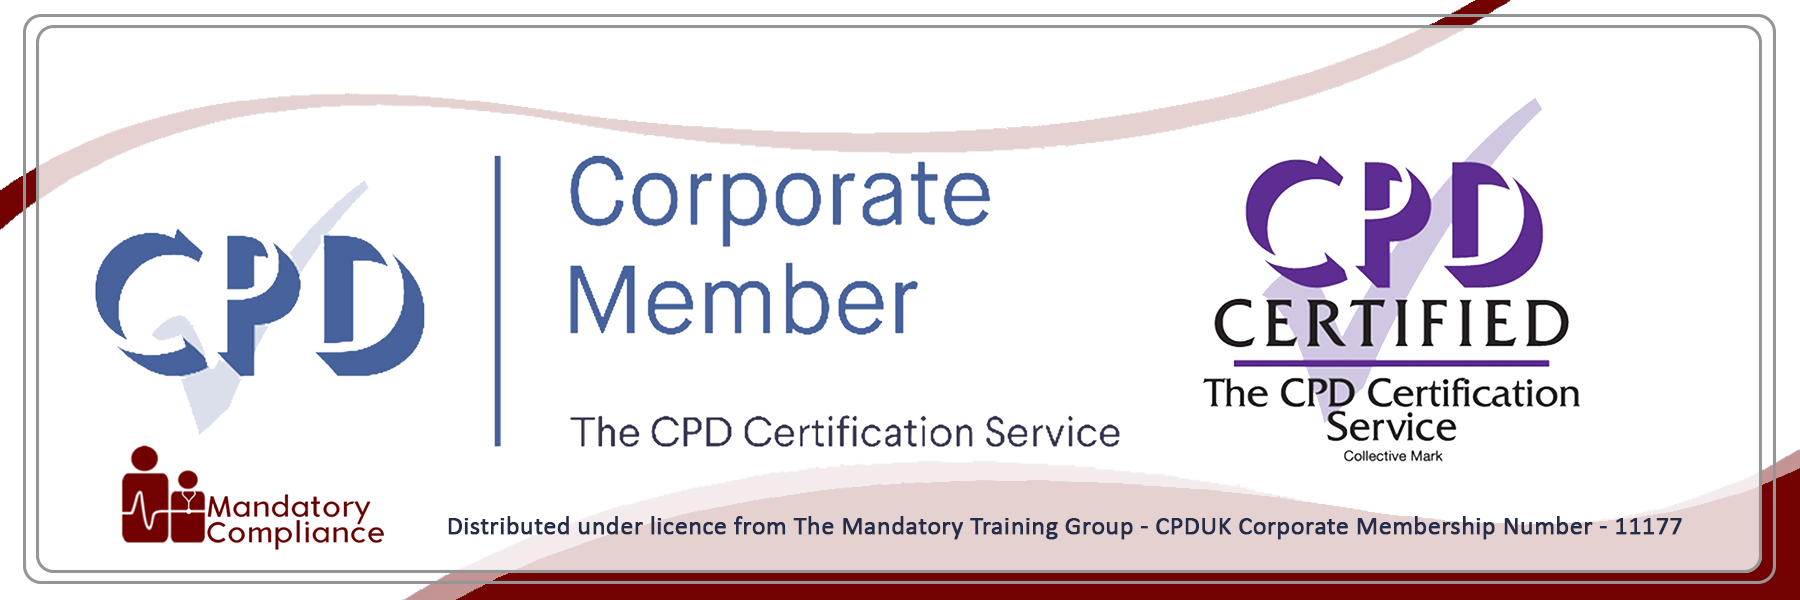 All in One-Day Mandatory Training Courses – 24 Online Courses - E-Learning Courses - Mandatory Compliance UK -